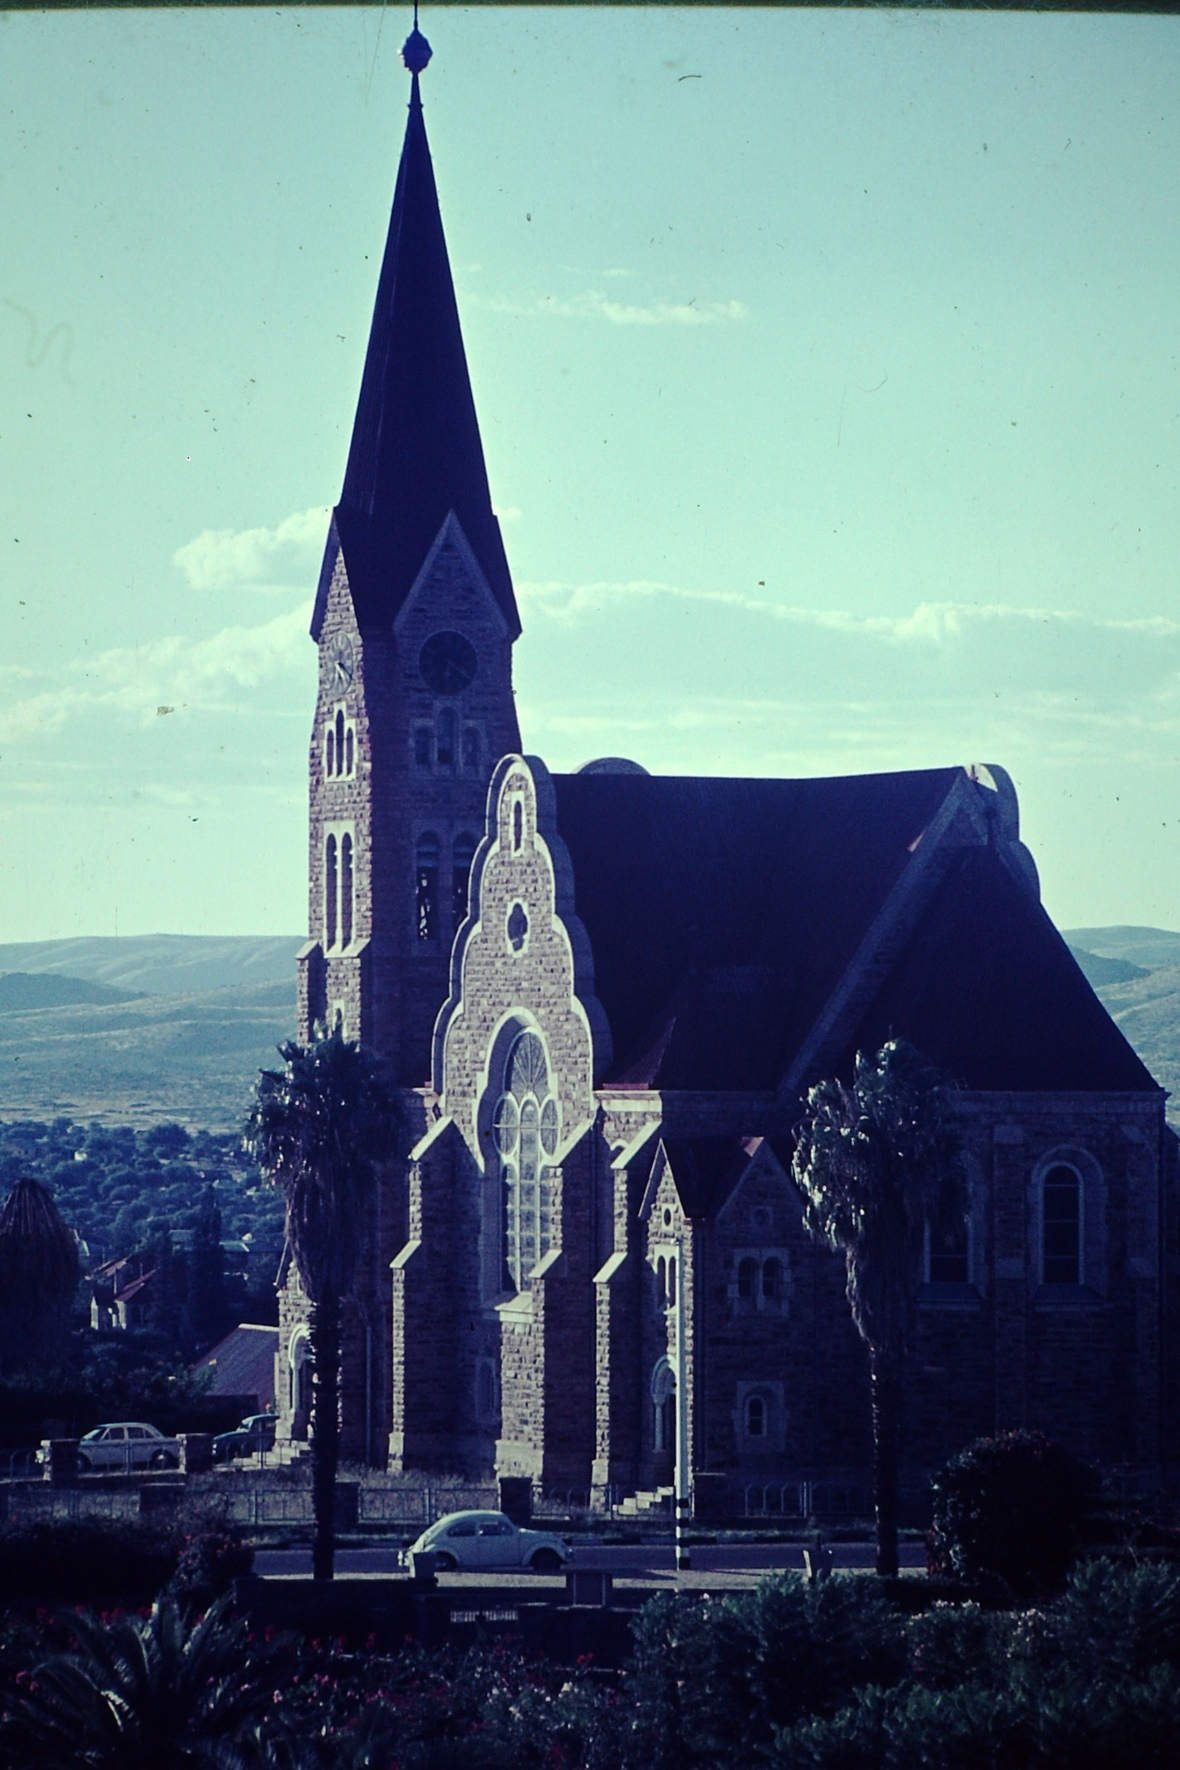 Christuskirche in the 70'ies, Windhoek, Namibia